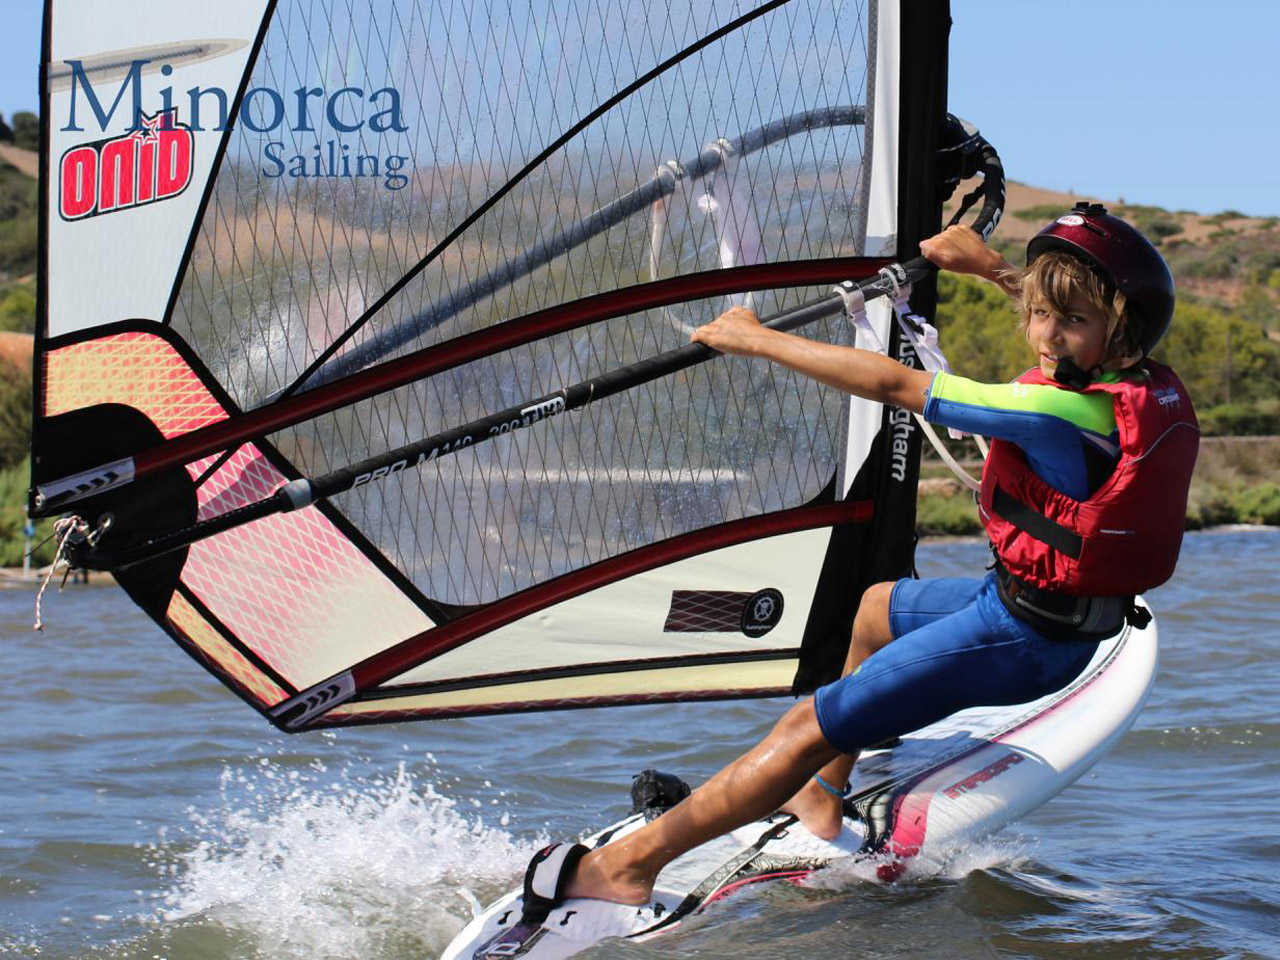 Junior Windsurf Tuition